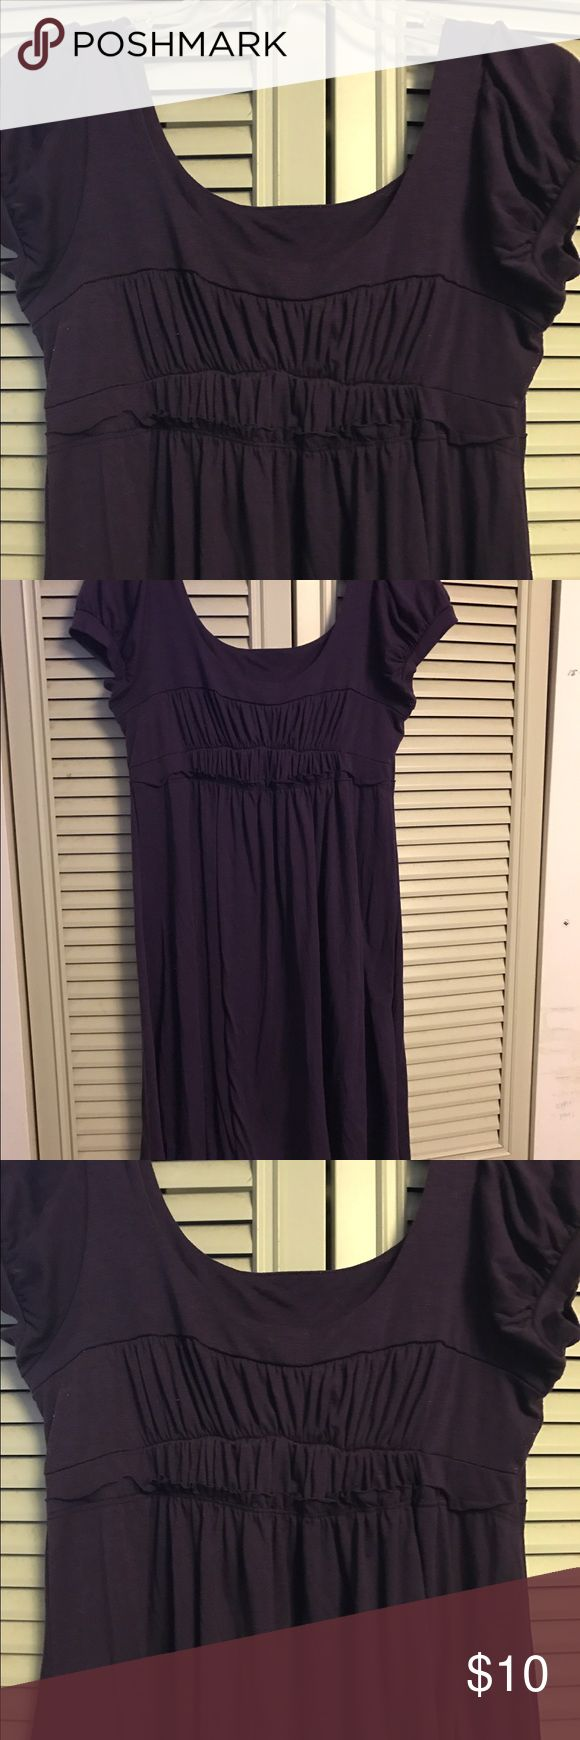 Delias Dress The purple Delias dress was worn before. It's in good condition. Great for wearing out to concerts and semi formal dinners. The length stops below knee. It's short sleeved. Material cotton. Make DELIAS. DELIAS Dresses